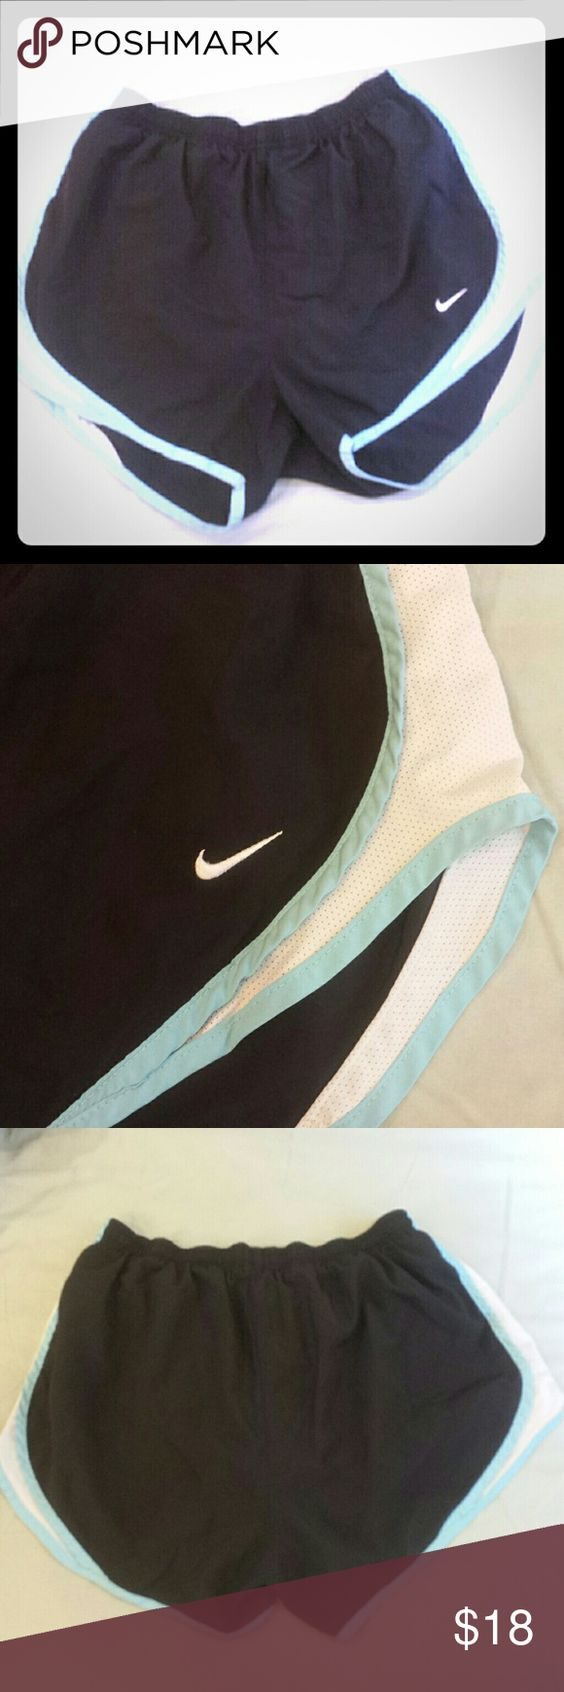 Nike Shorts! Black nike running shorts! Good condition, small ink stain on inside pocket. Inside lining is clean! These last forever!! Size medium! Nike Shorts